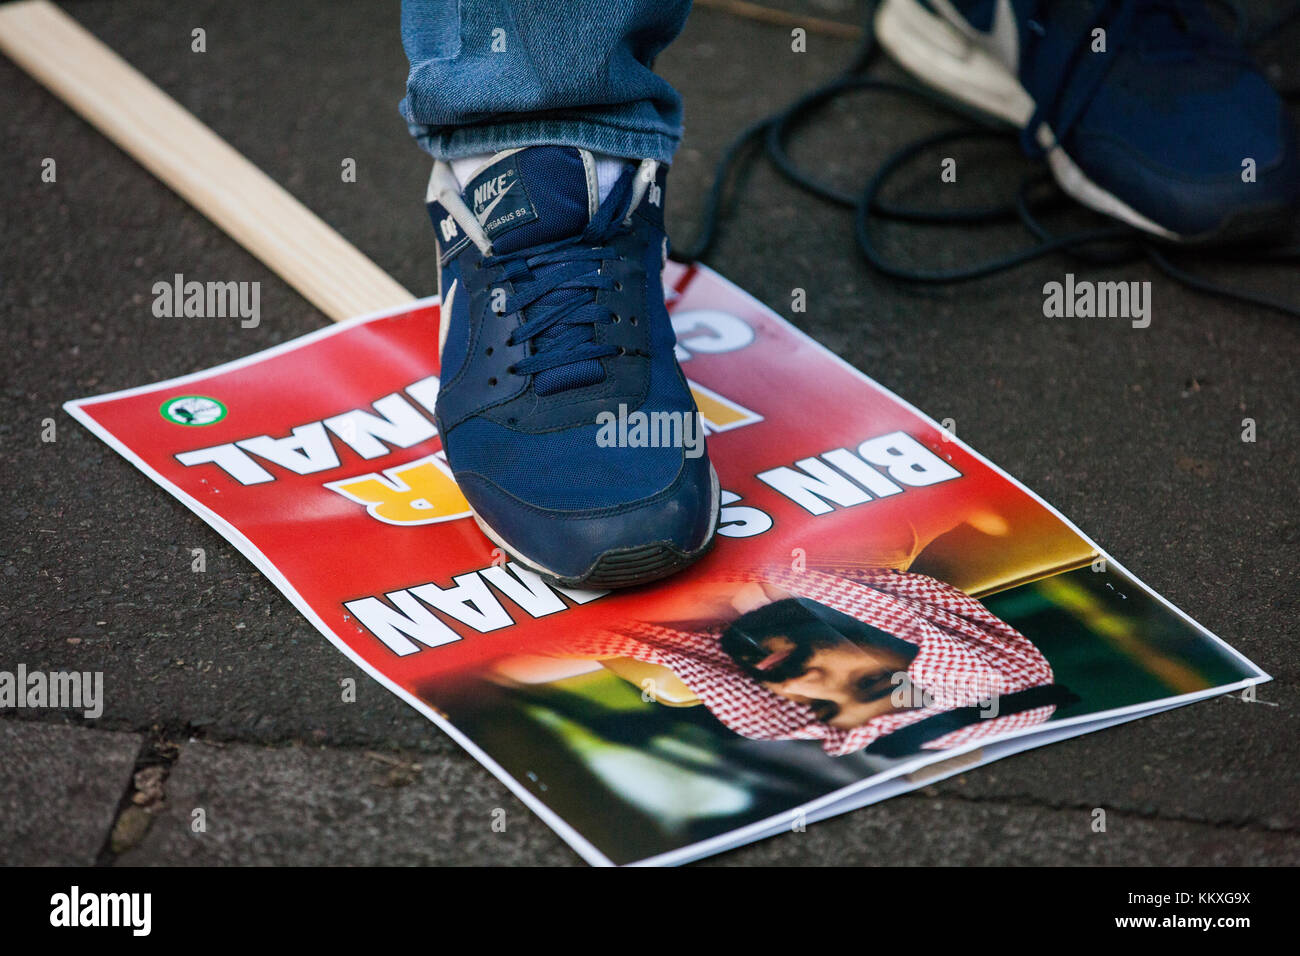 London, UK. 2nd December, 2017. An Arab demonstrator stands on an image of Mohammad bin Salman, Crown Prince of - Stock Image